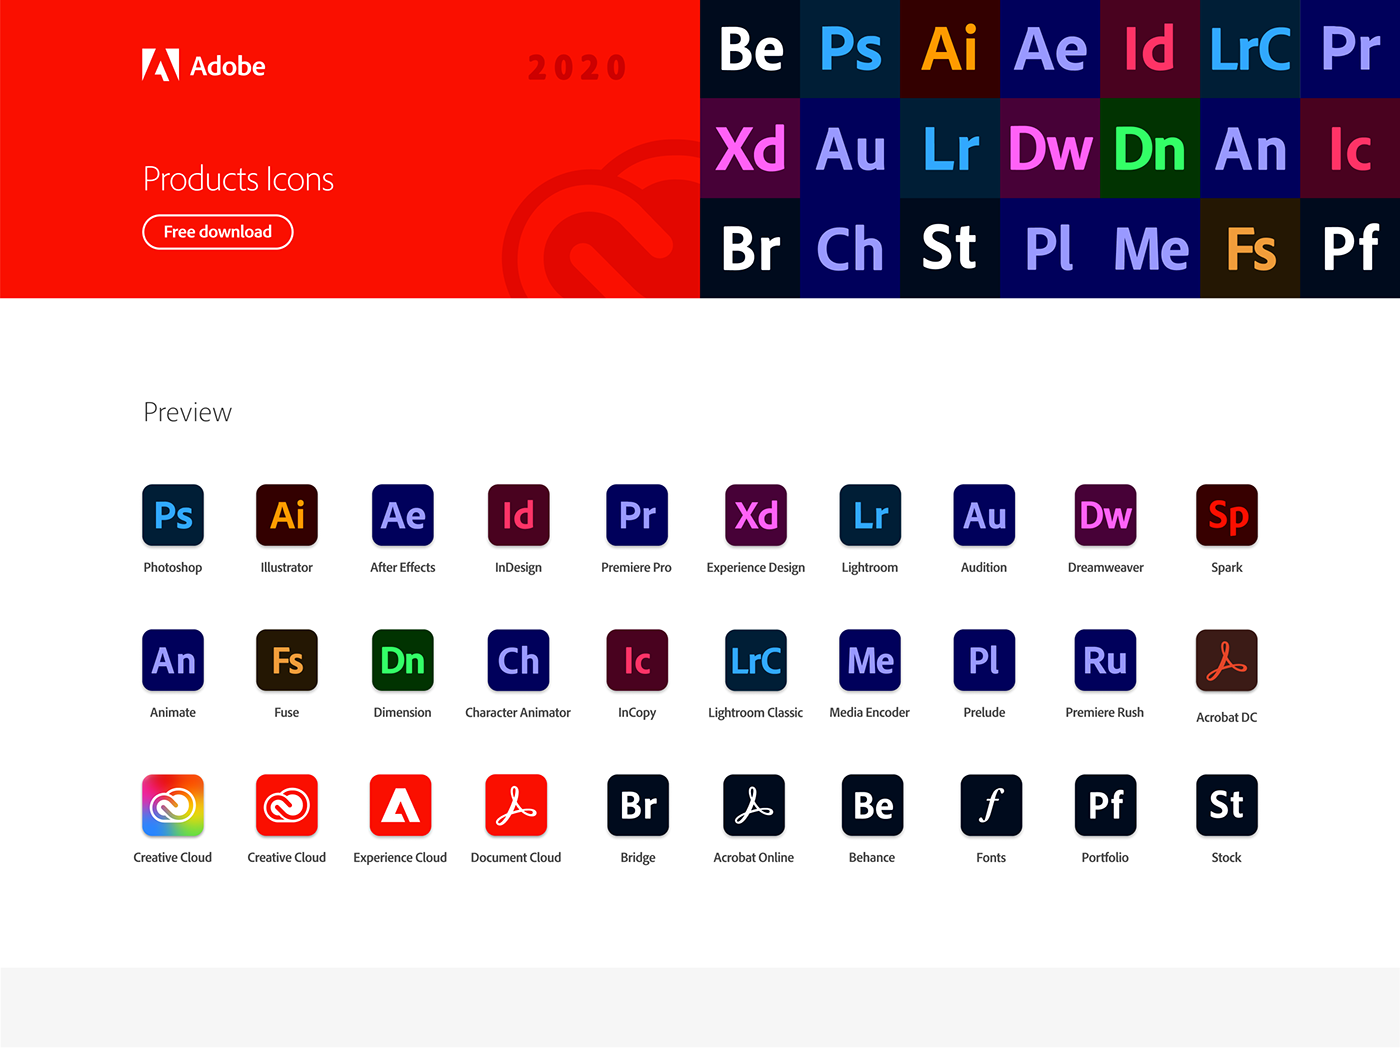 adobe Adobe XD Creative Cloud download Figma free icons Illustrator product icon vector